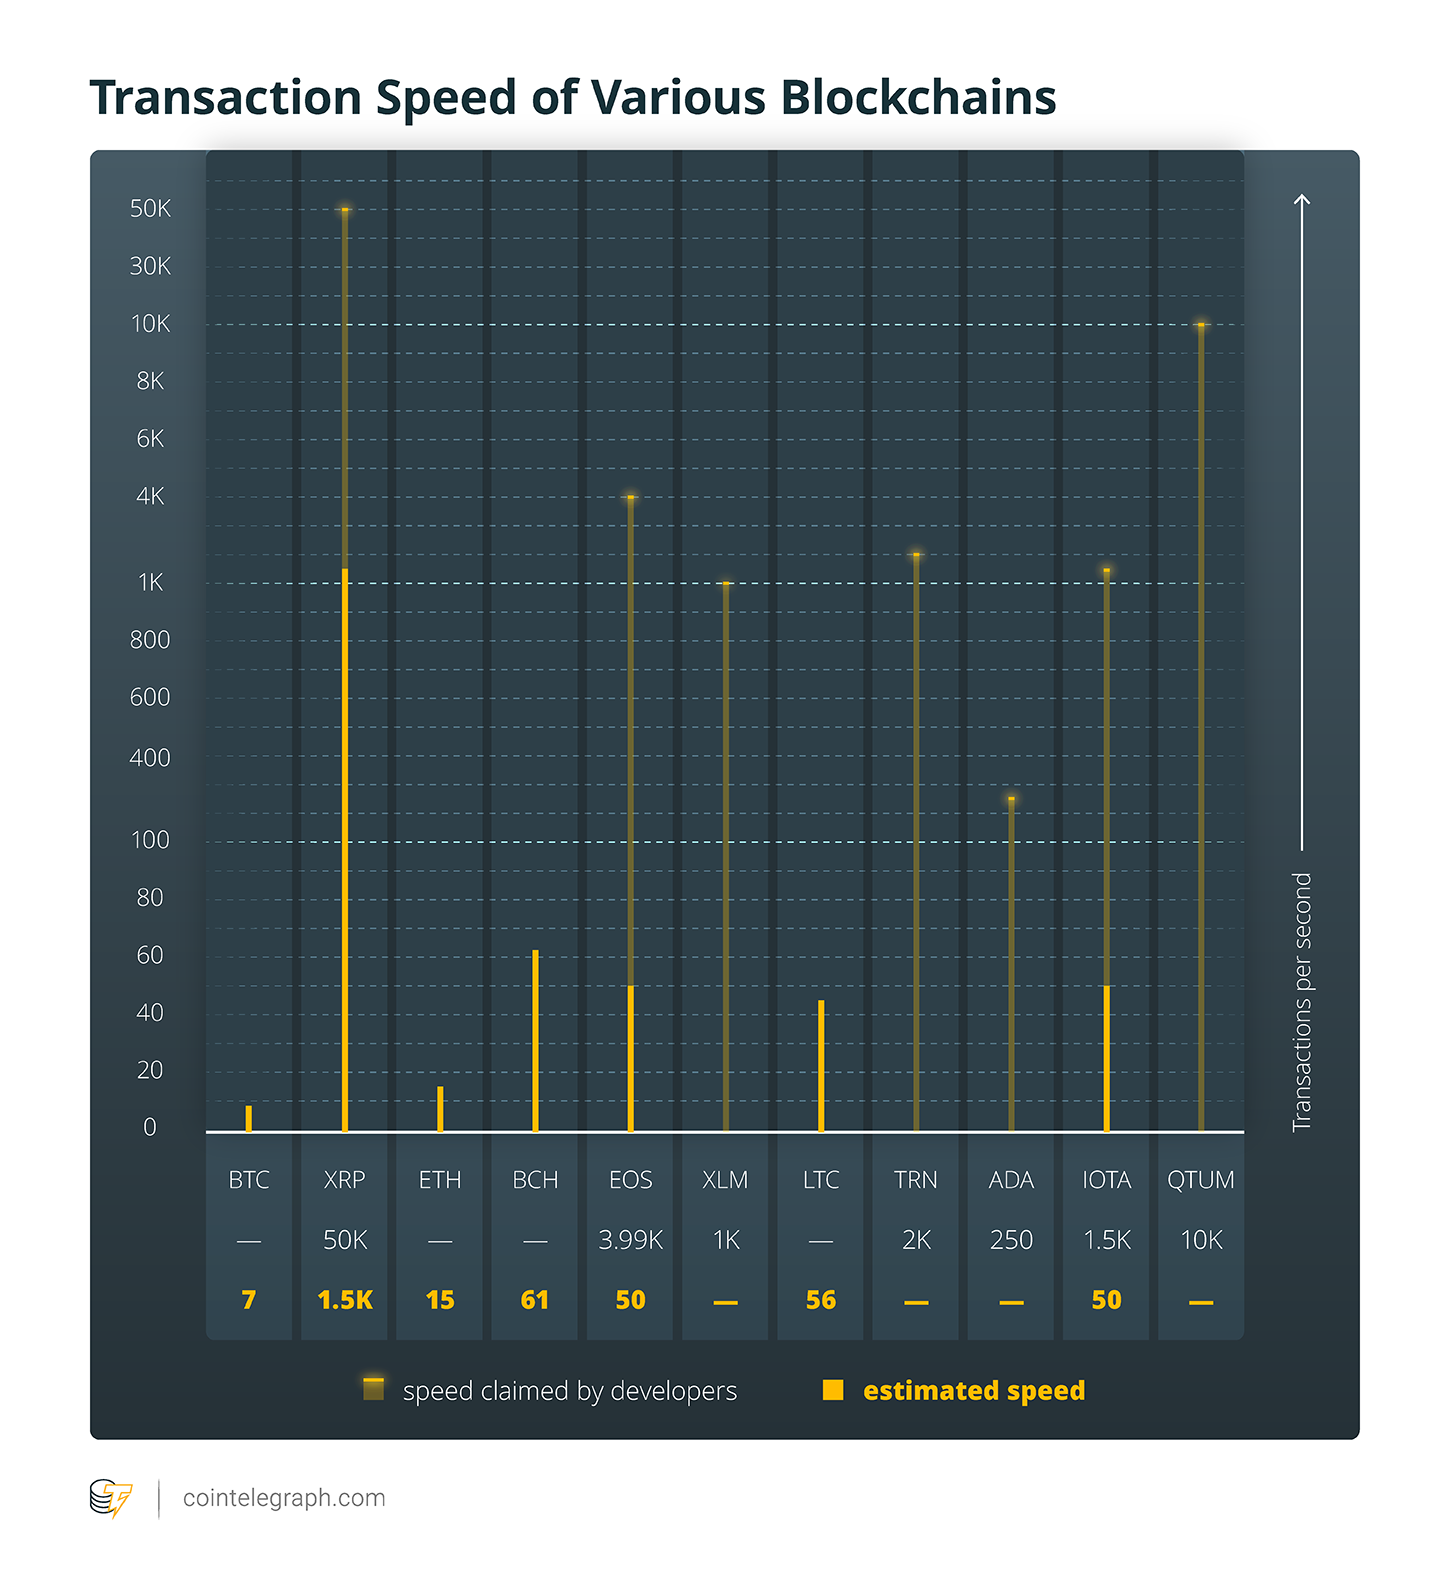 Transaction Speed of Various Blockchains